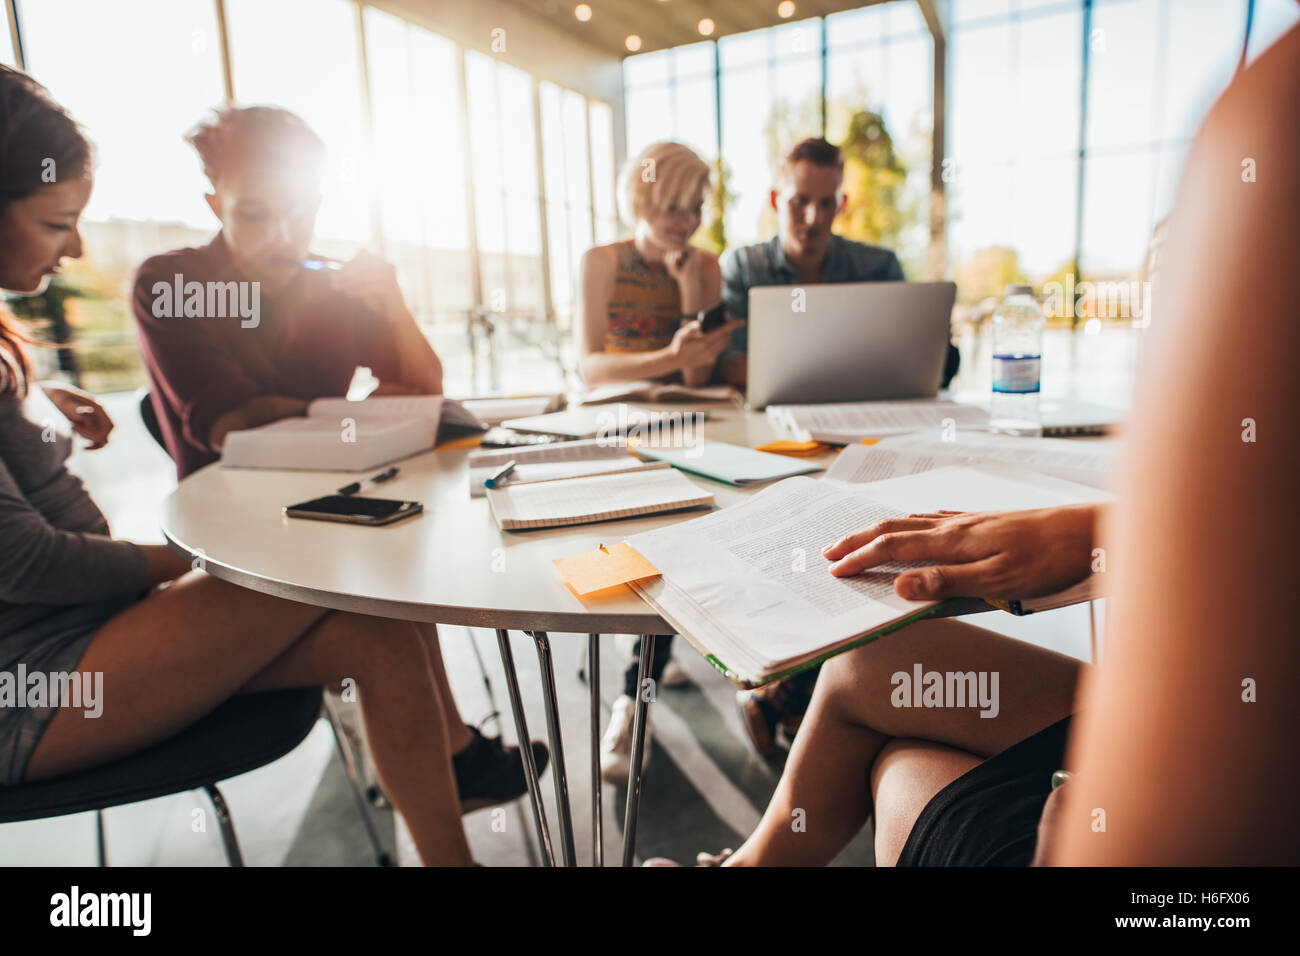 Young students sitting around a table in library with books and laptop. University students studying. - Stock Image